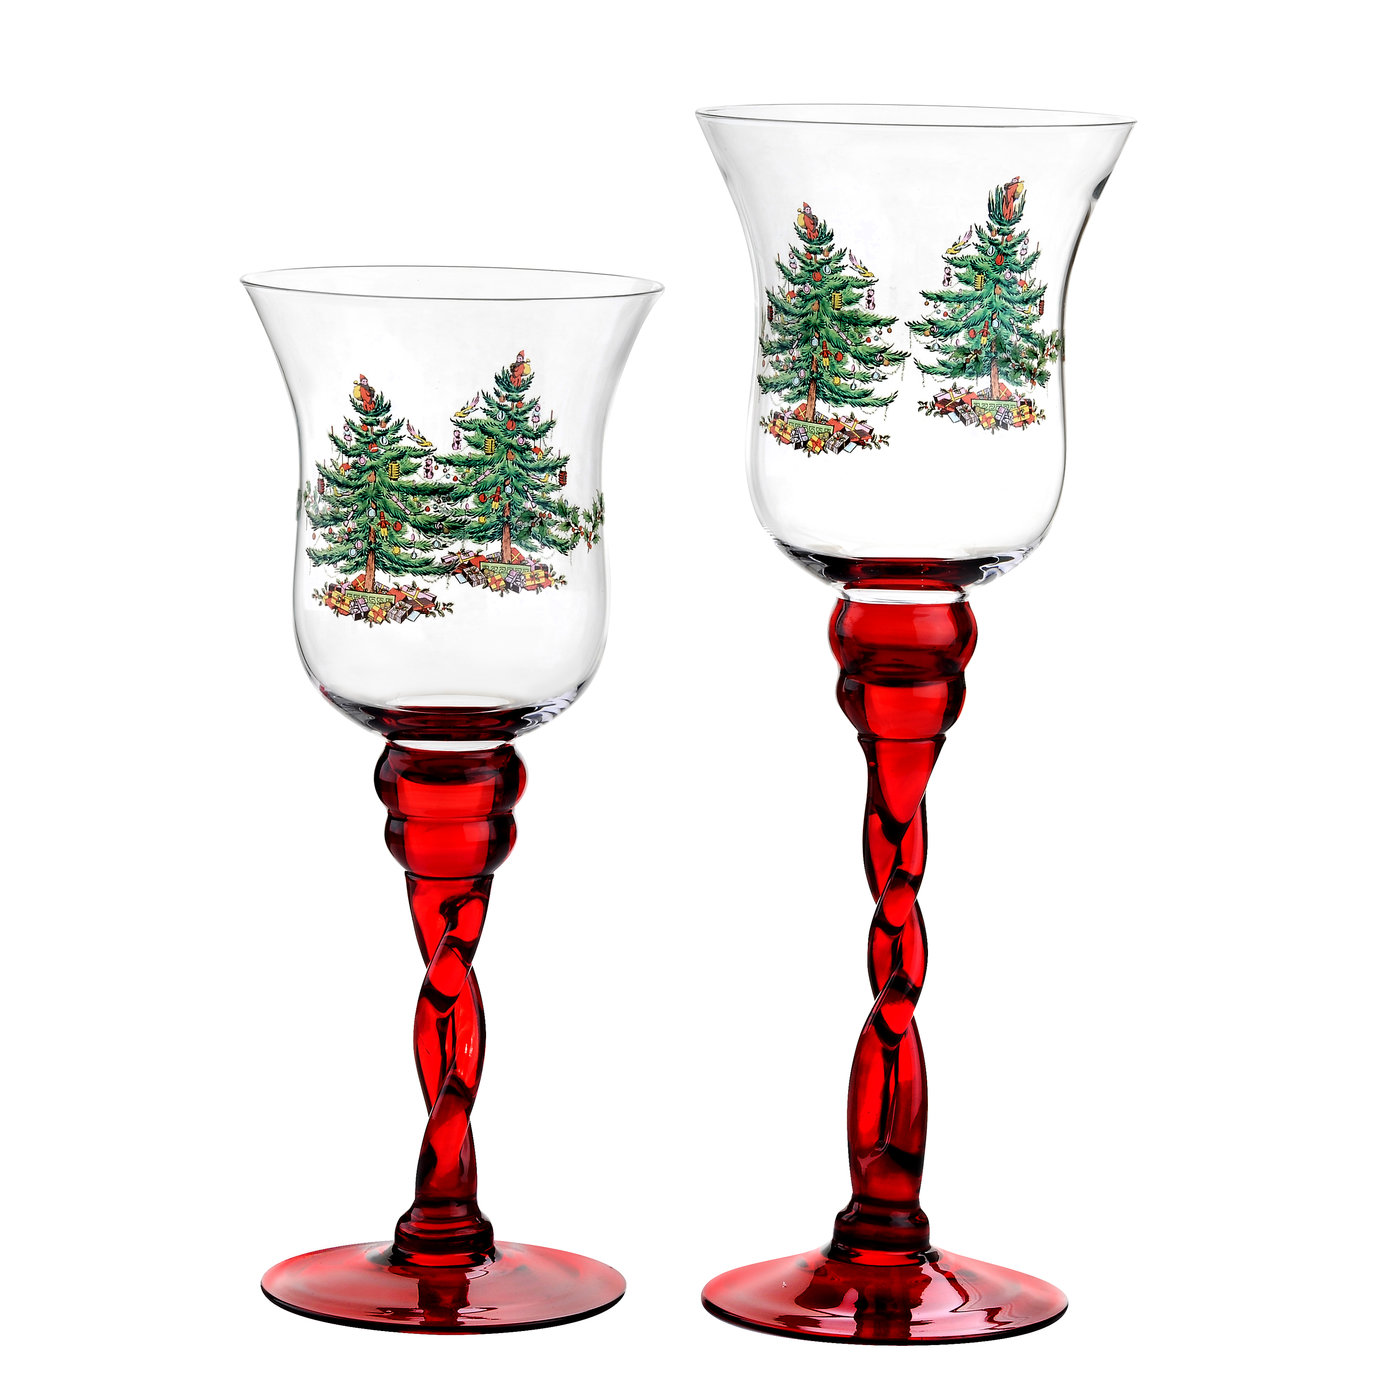 Spode Christmas Tree Red-Stem Fluted Footed Glass Candle Holders Set of 2 image number 0